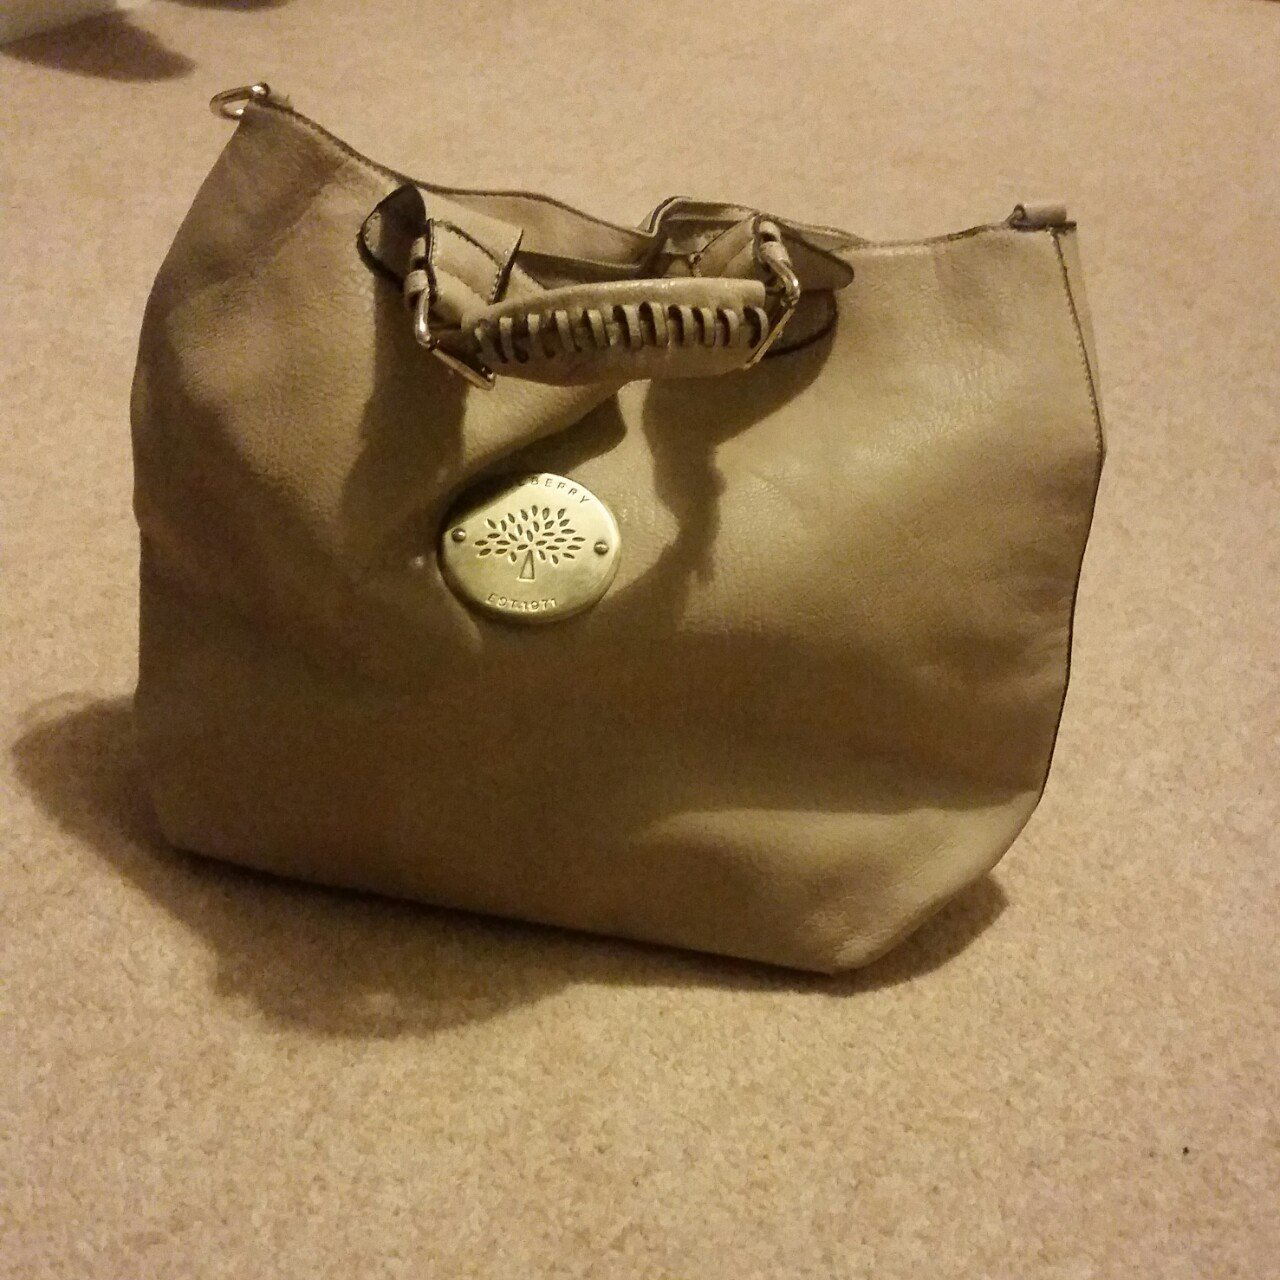 c3d6f763c6 Cream mulberry look a like handbag